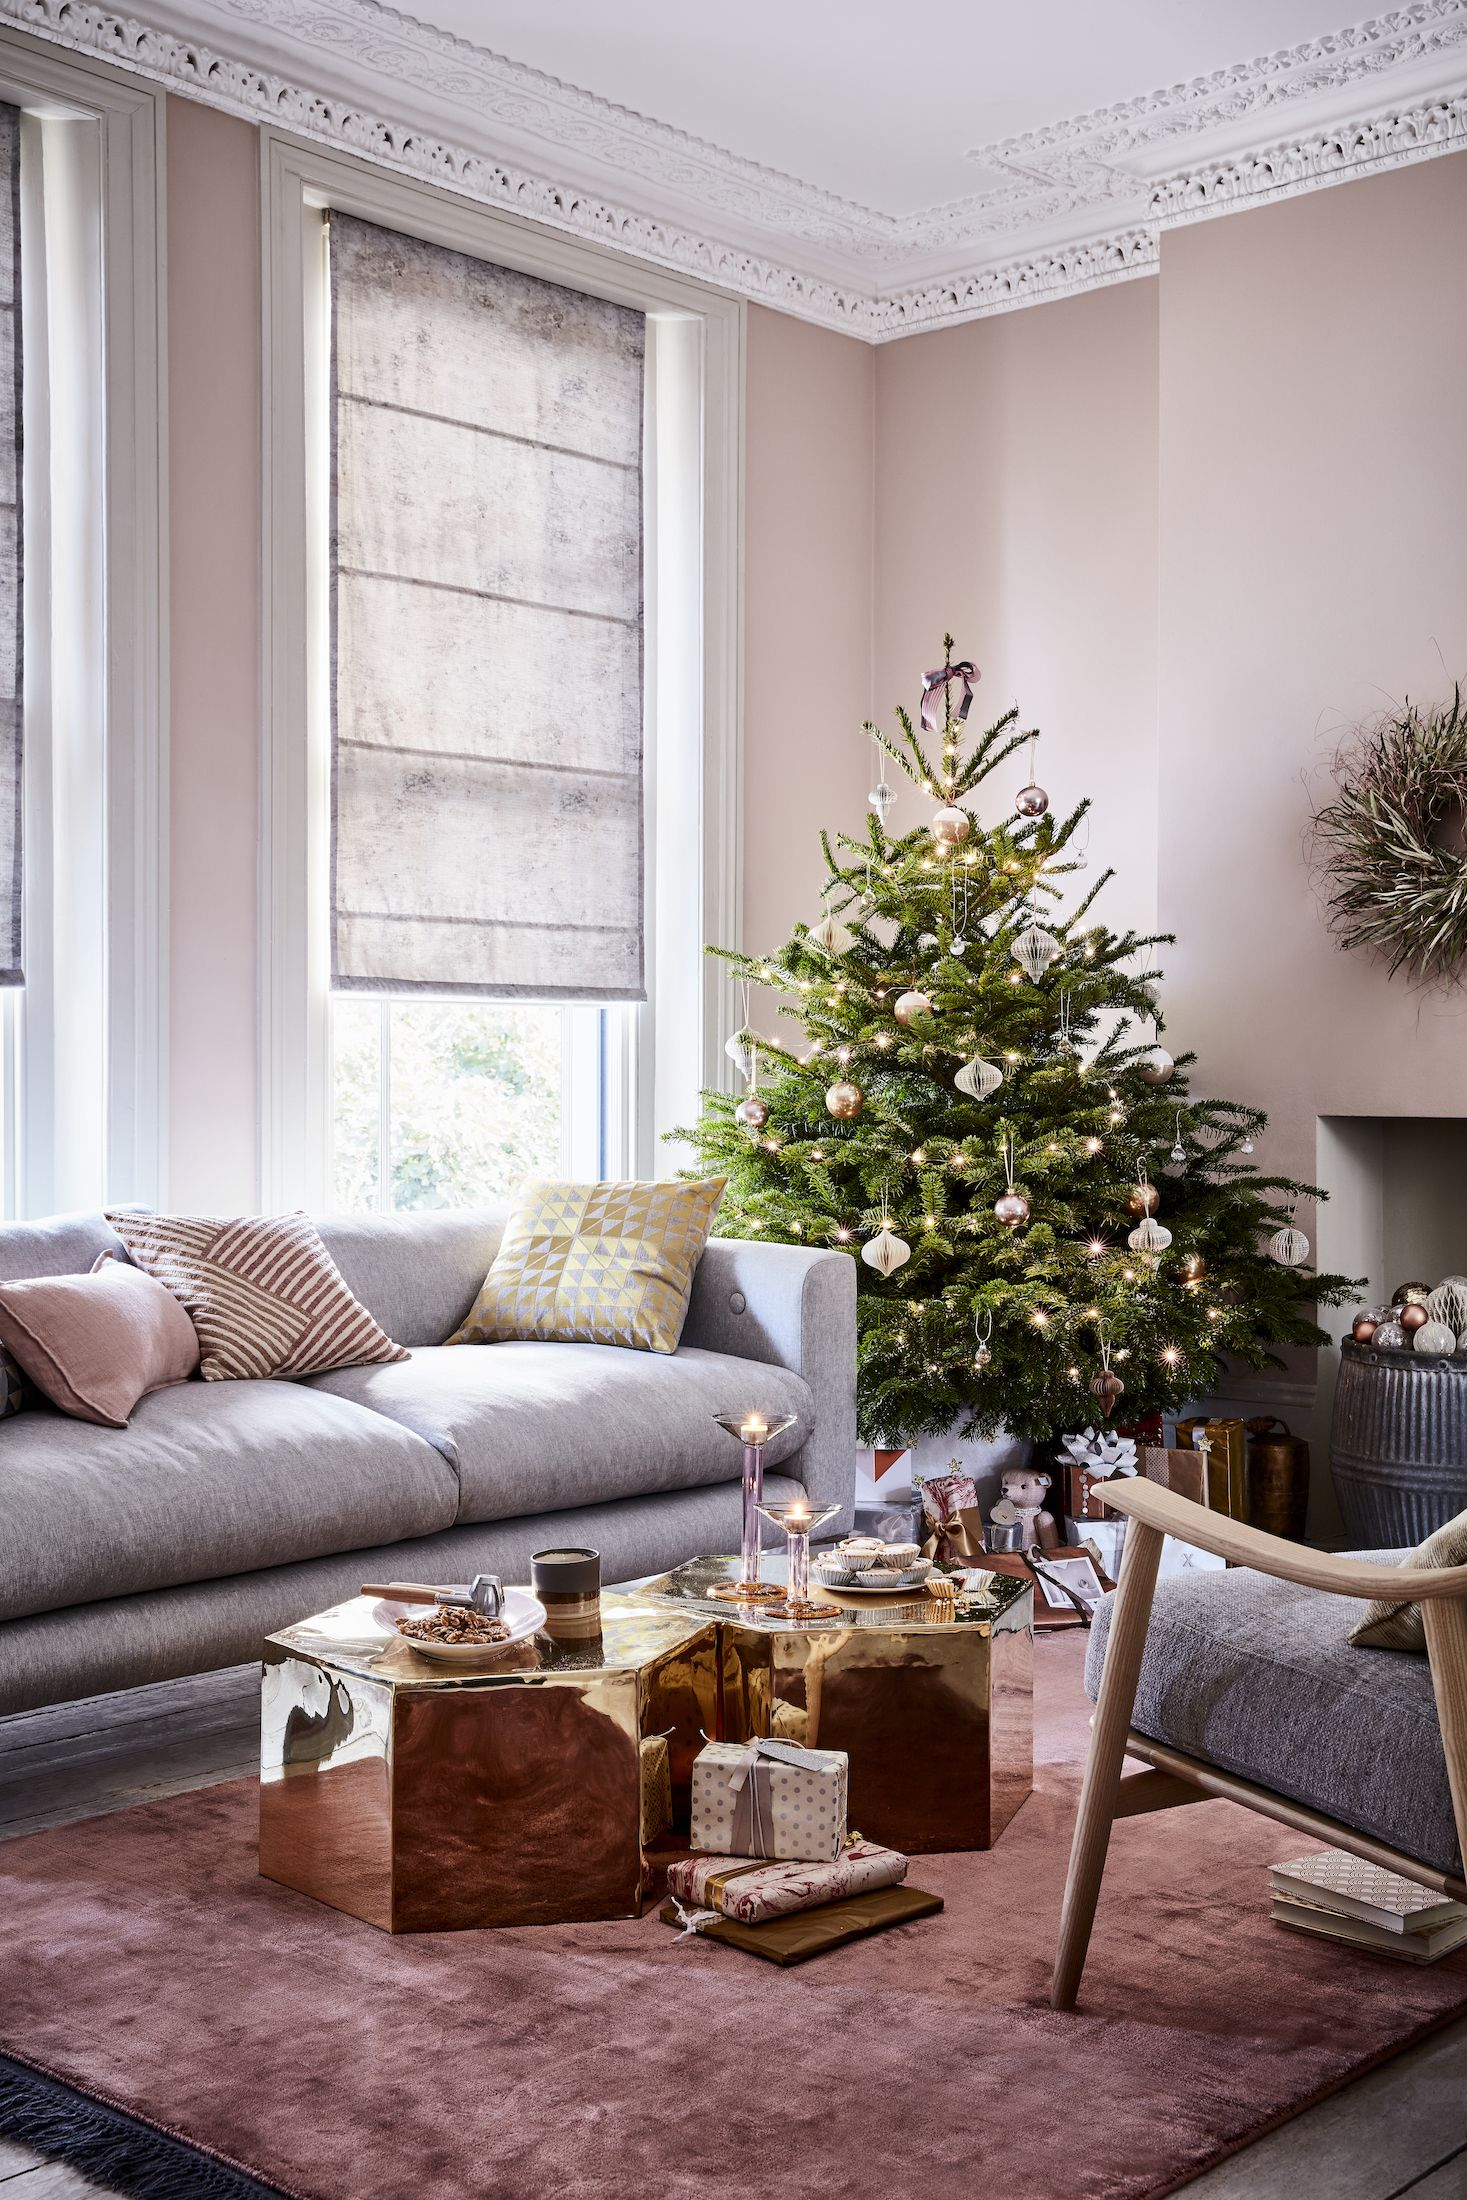 Why do we have Christmas trees?